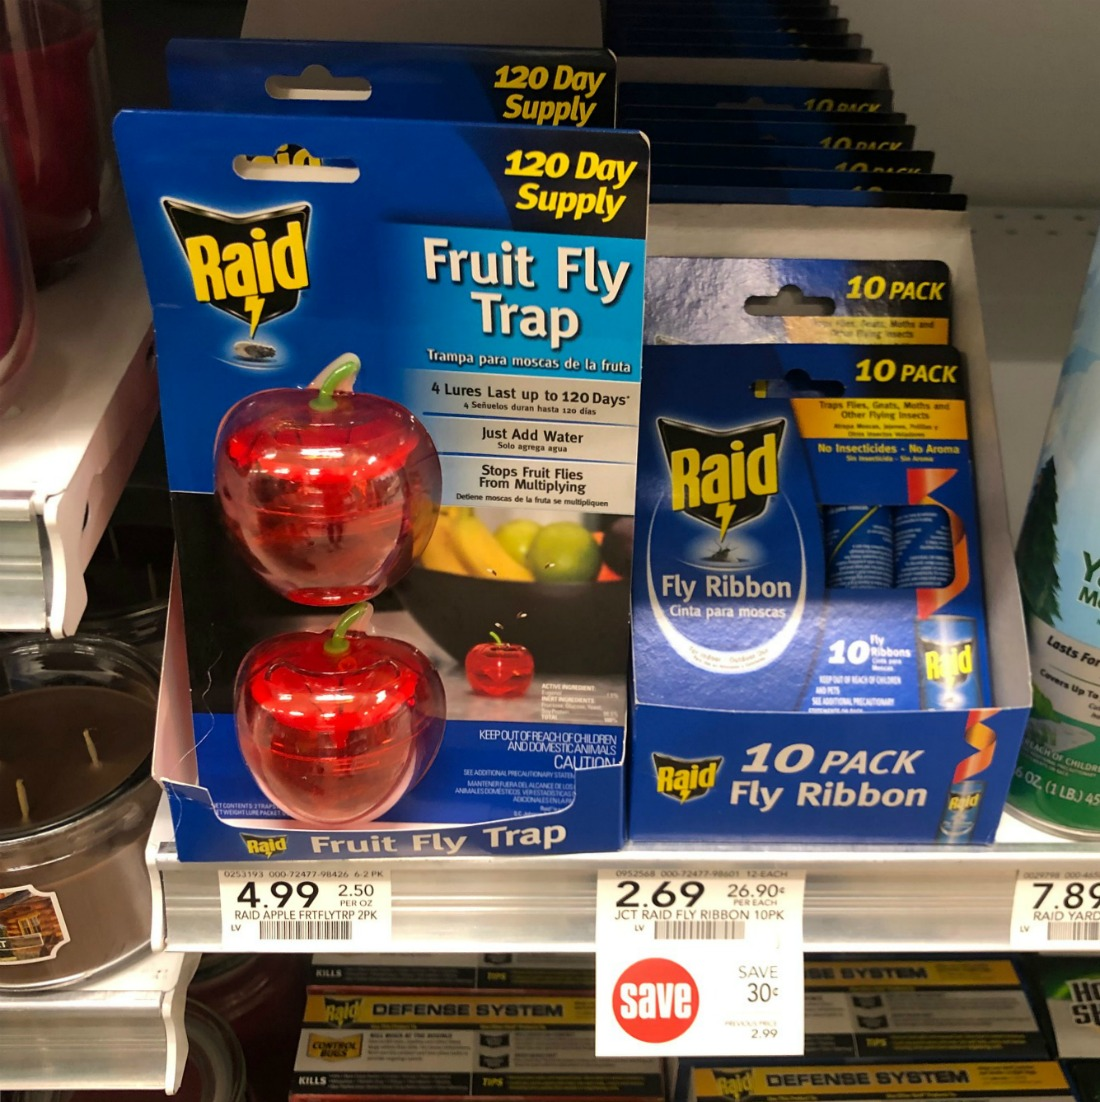 New Raid & Off! Coupons To Print - Get Fly Ribbons For Just $2.04 At Publix on I Heart Publix